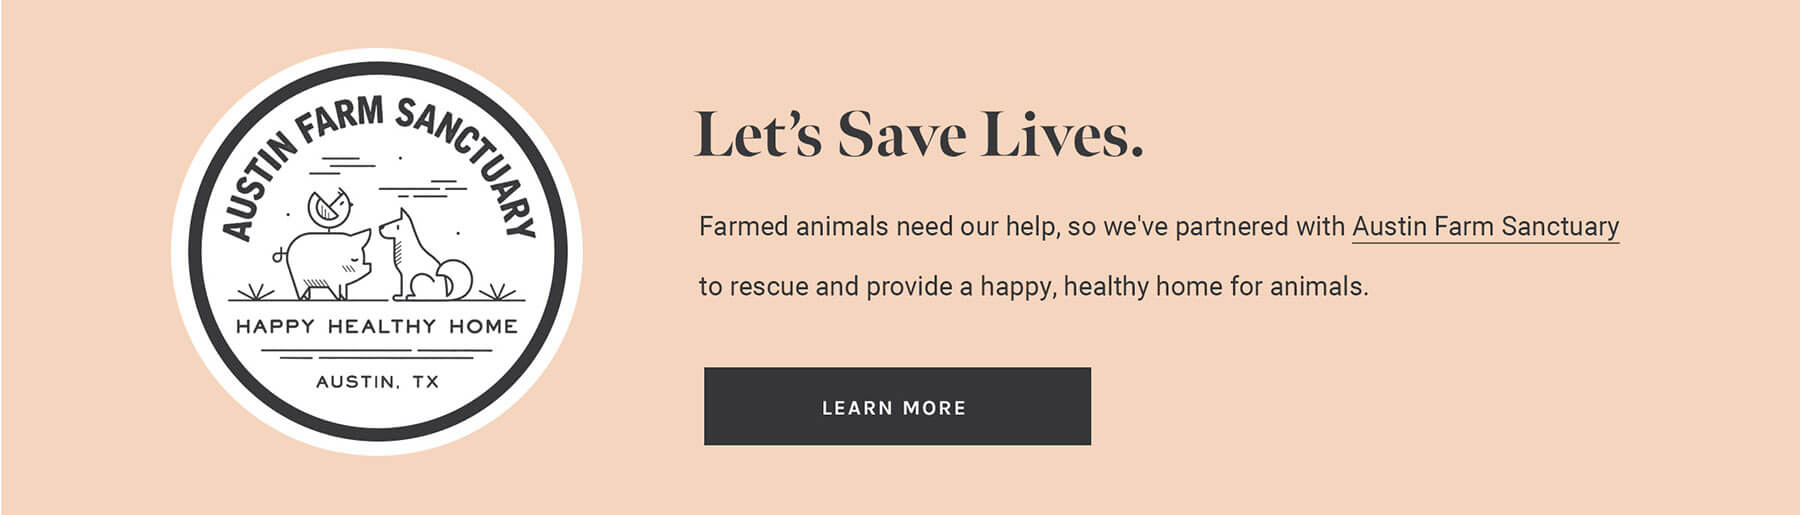 How to get 10% of your purchase donated to Austin Farm Sanctuary